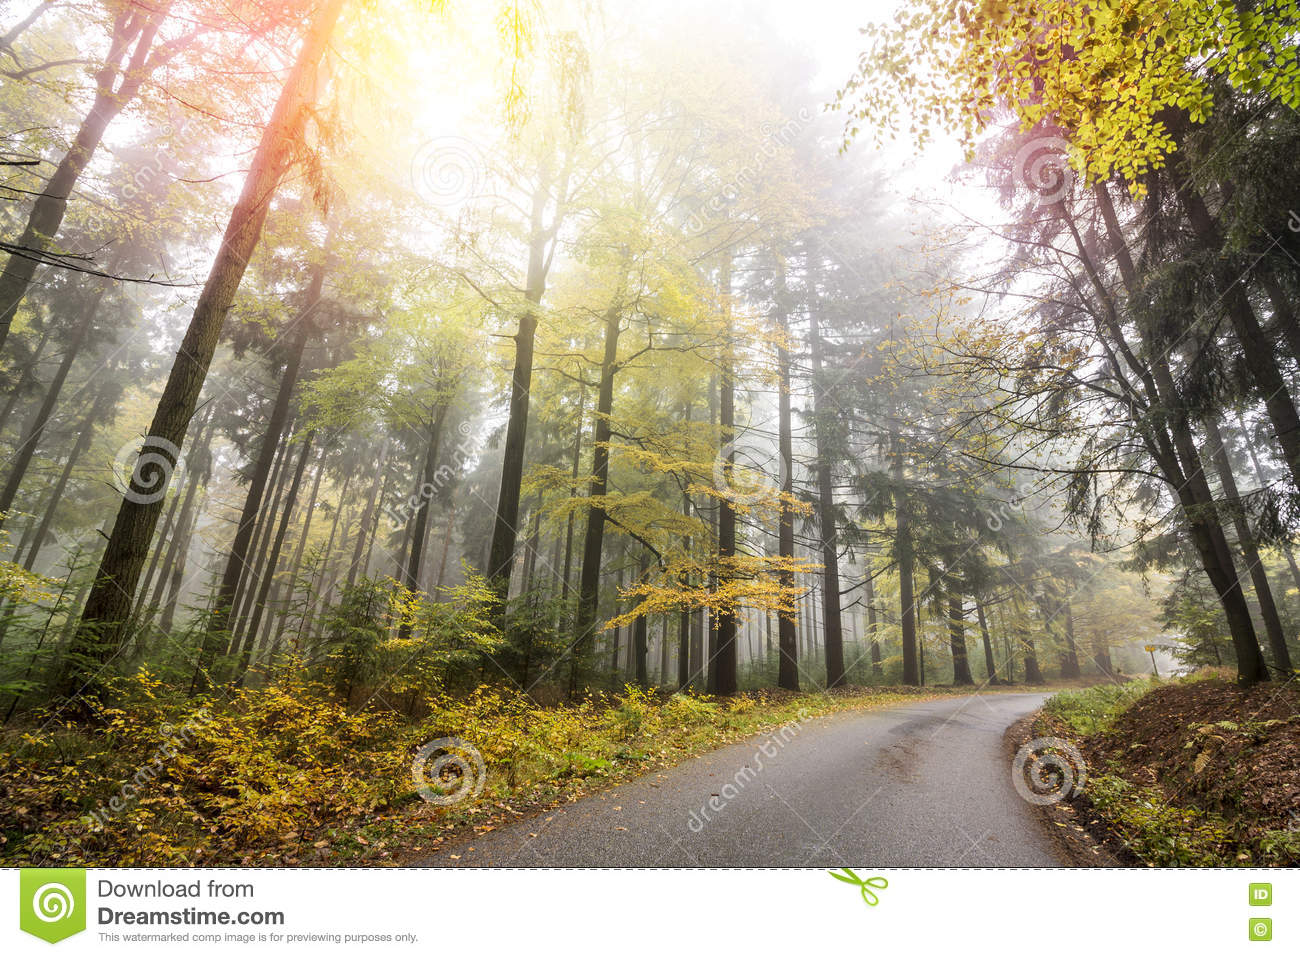 Autumn Forest with Road